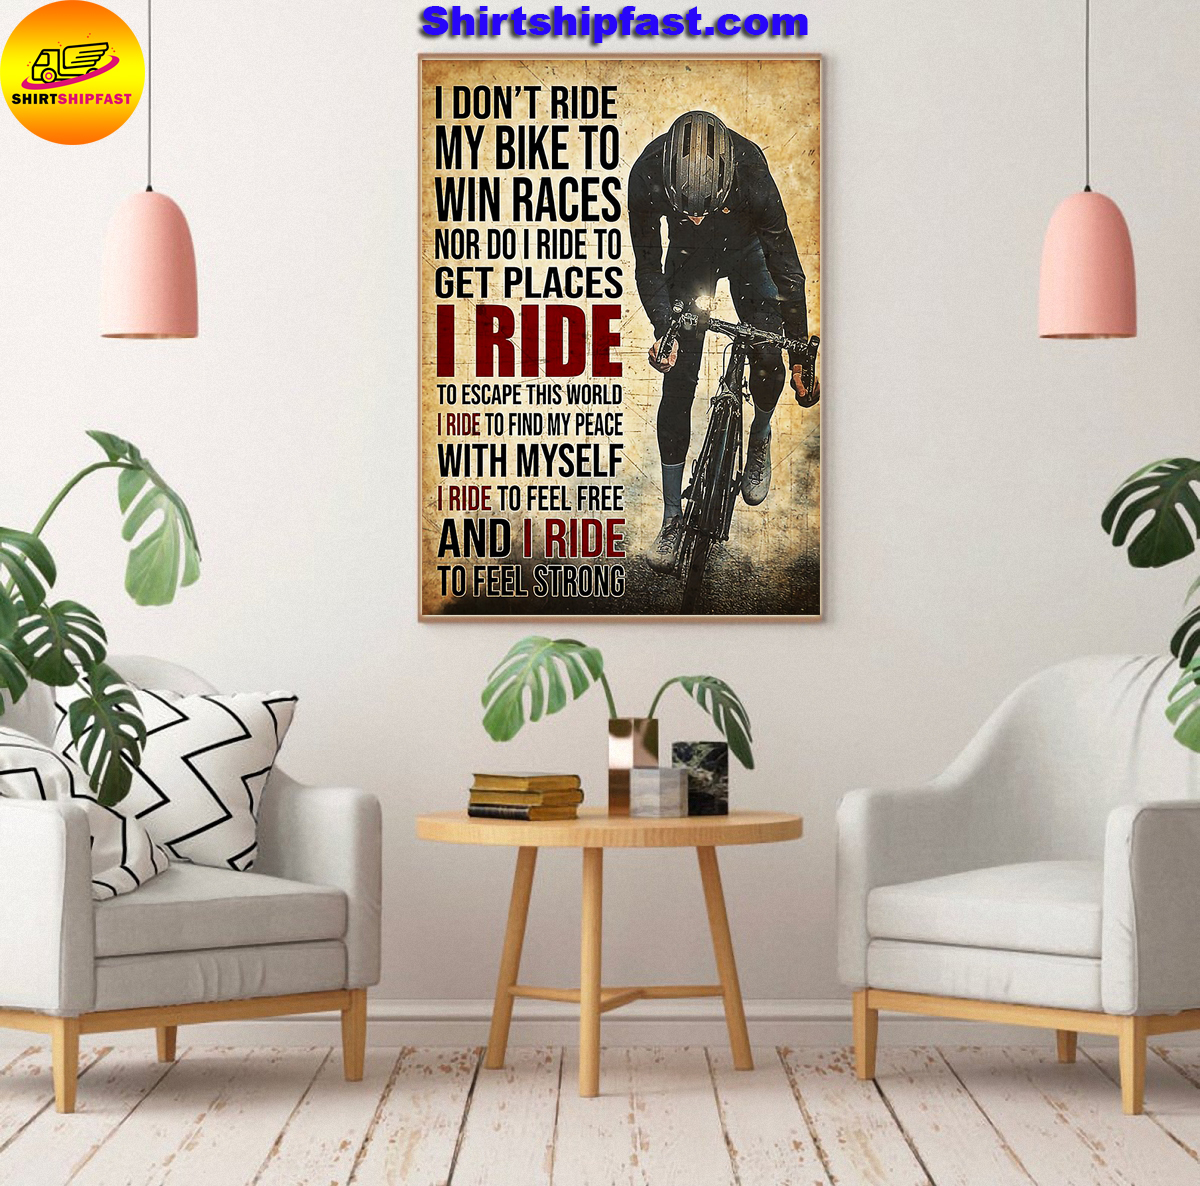 I don't ride my bike to win races Cycling poster - Picture 2